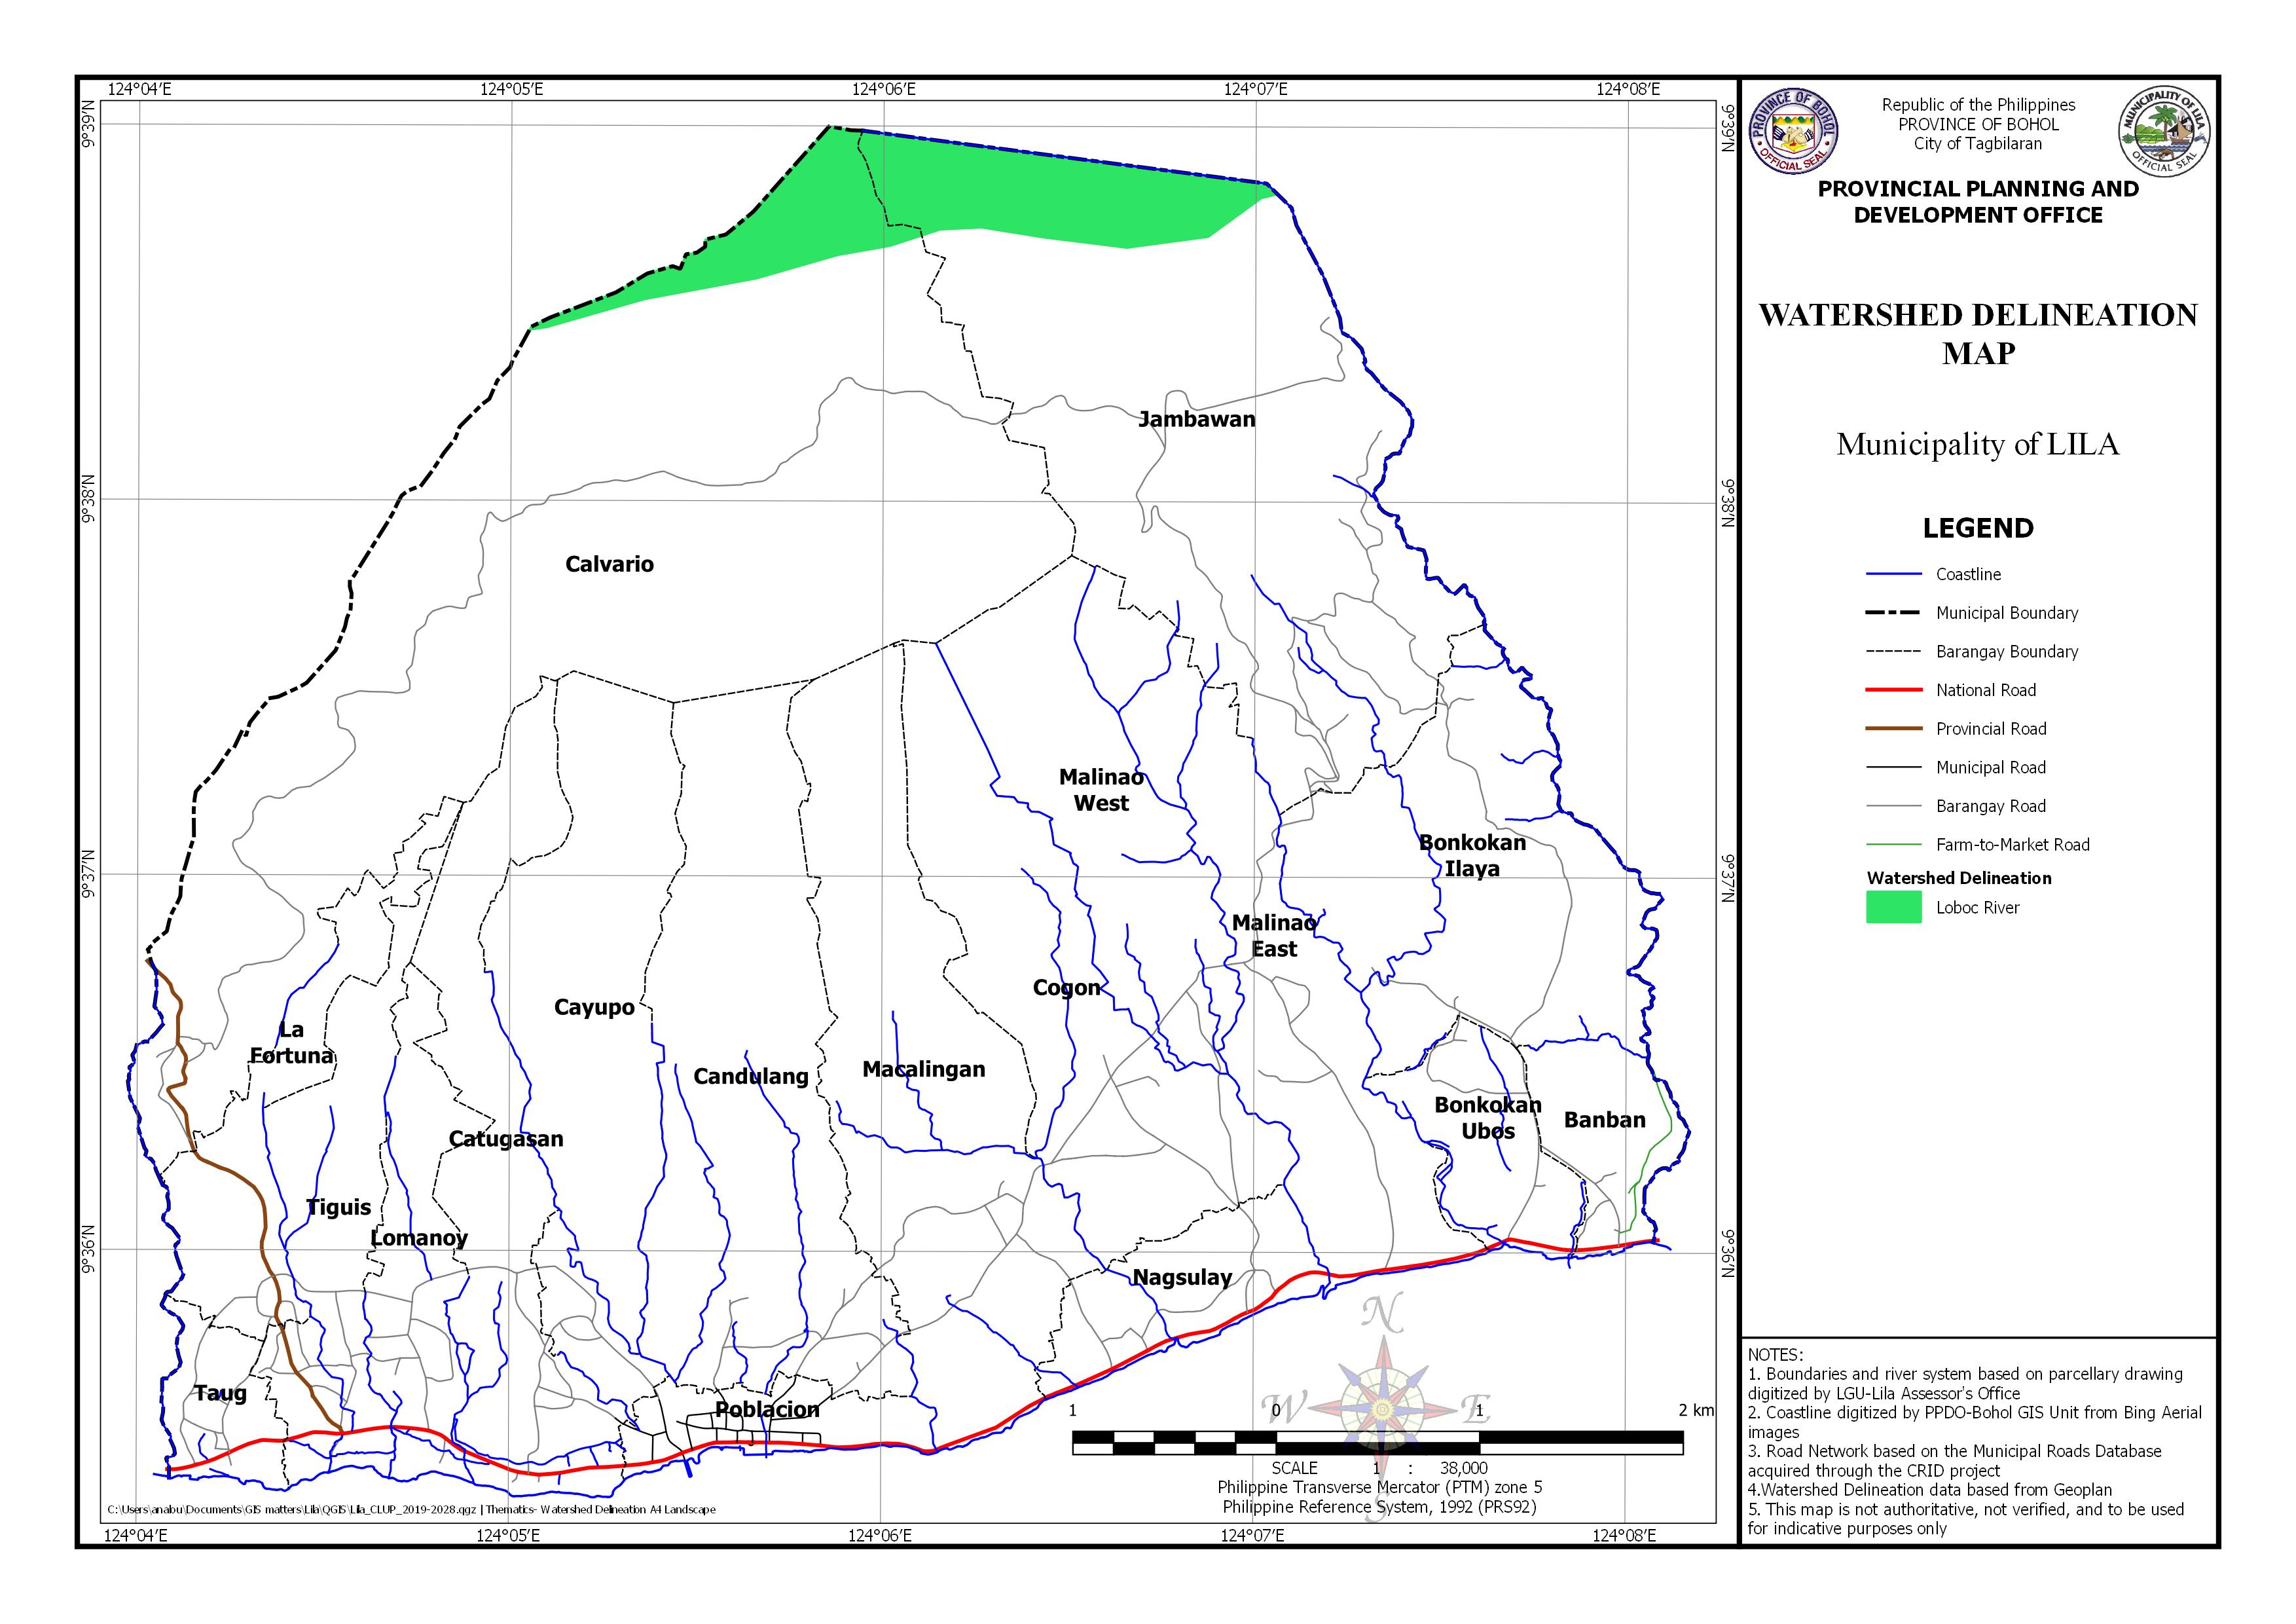 Watershed Delineation Map